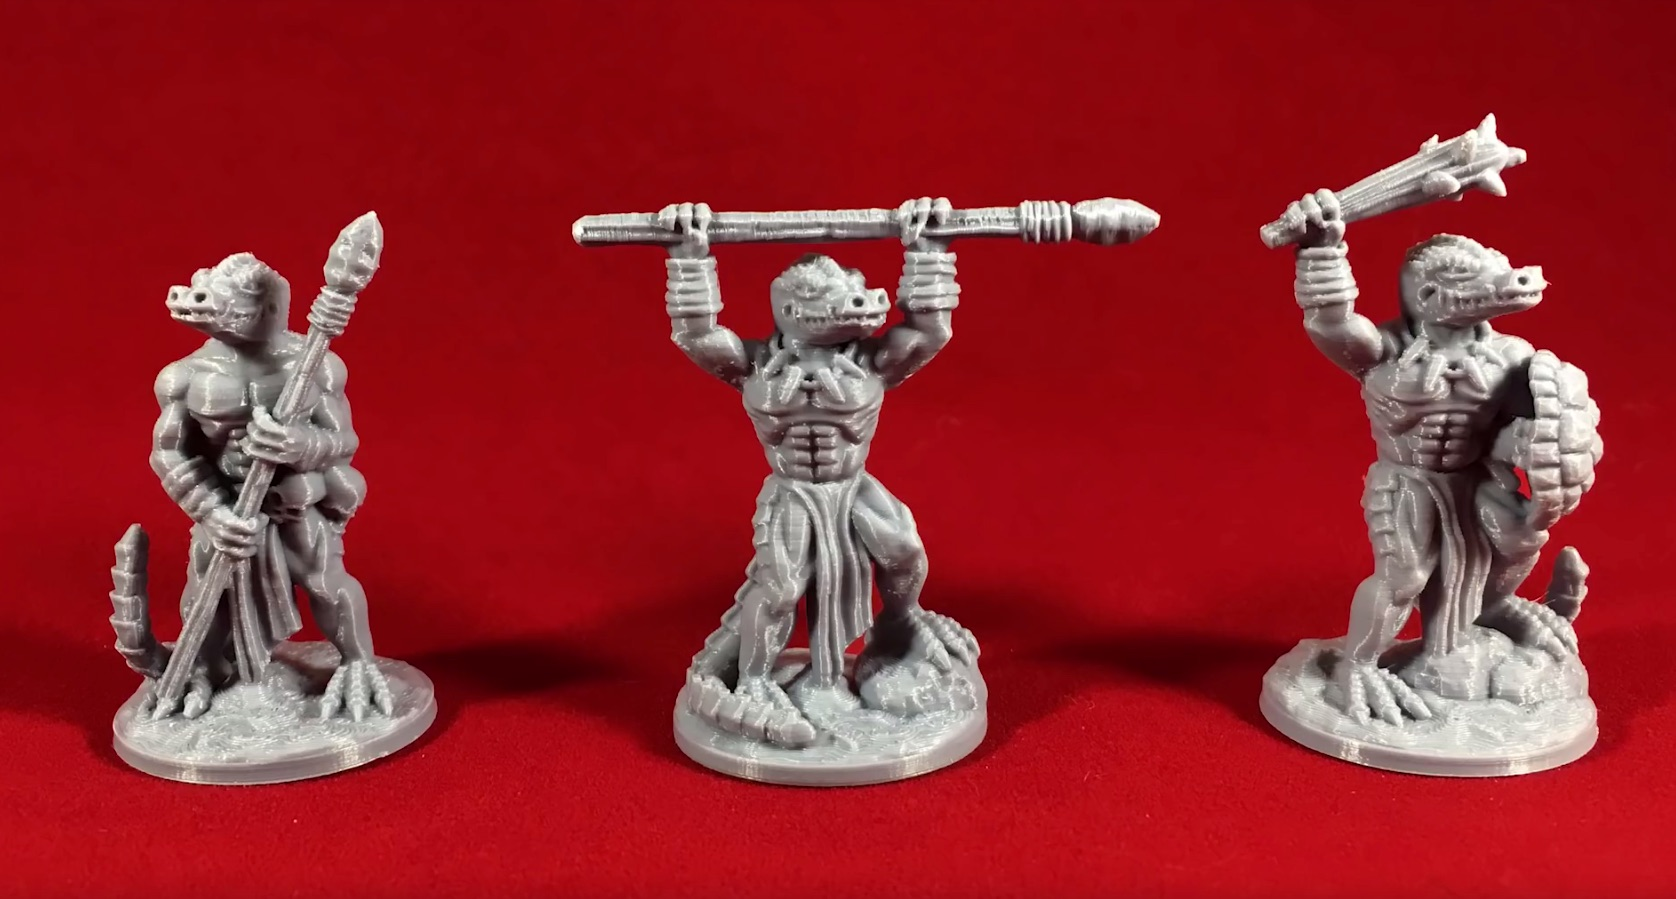 graphic regarding 3d Printable Figures named How in direction of Print Miniature Statistics upon a 3D Printer Produce: